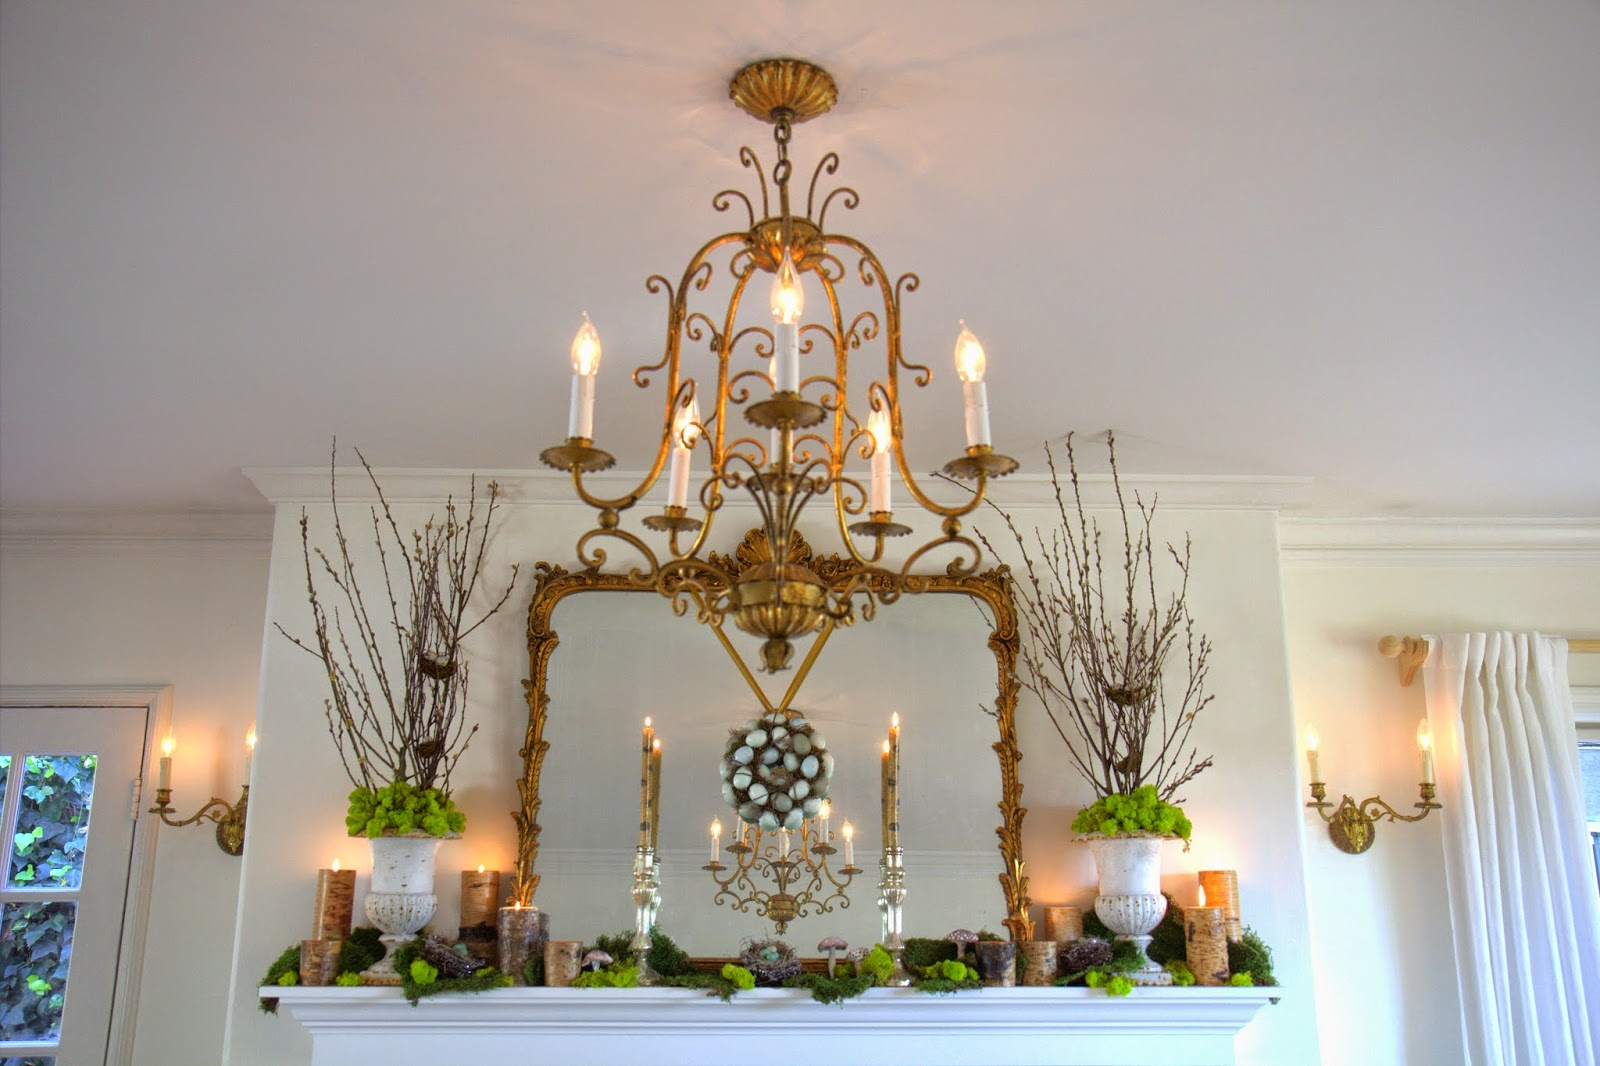 Woodland Party; Living Room mantle, chandelier, and sconces: Nora's Nest